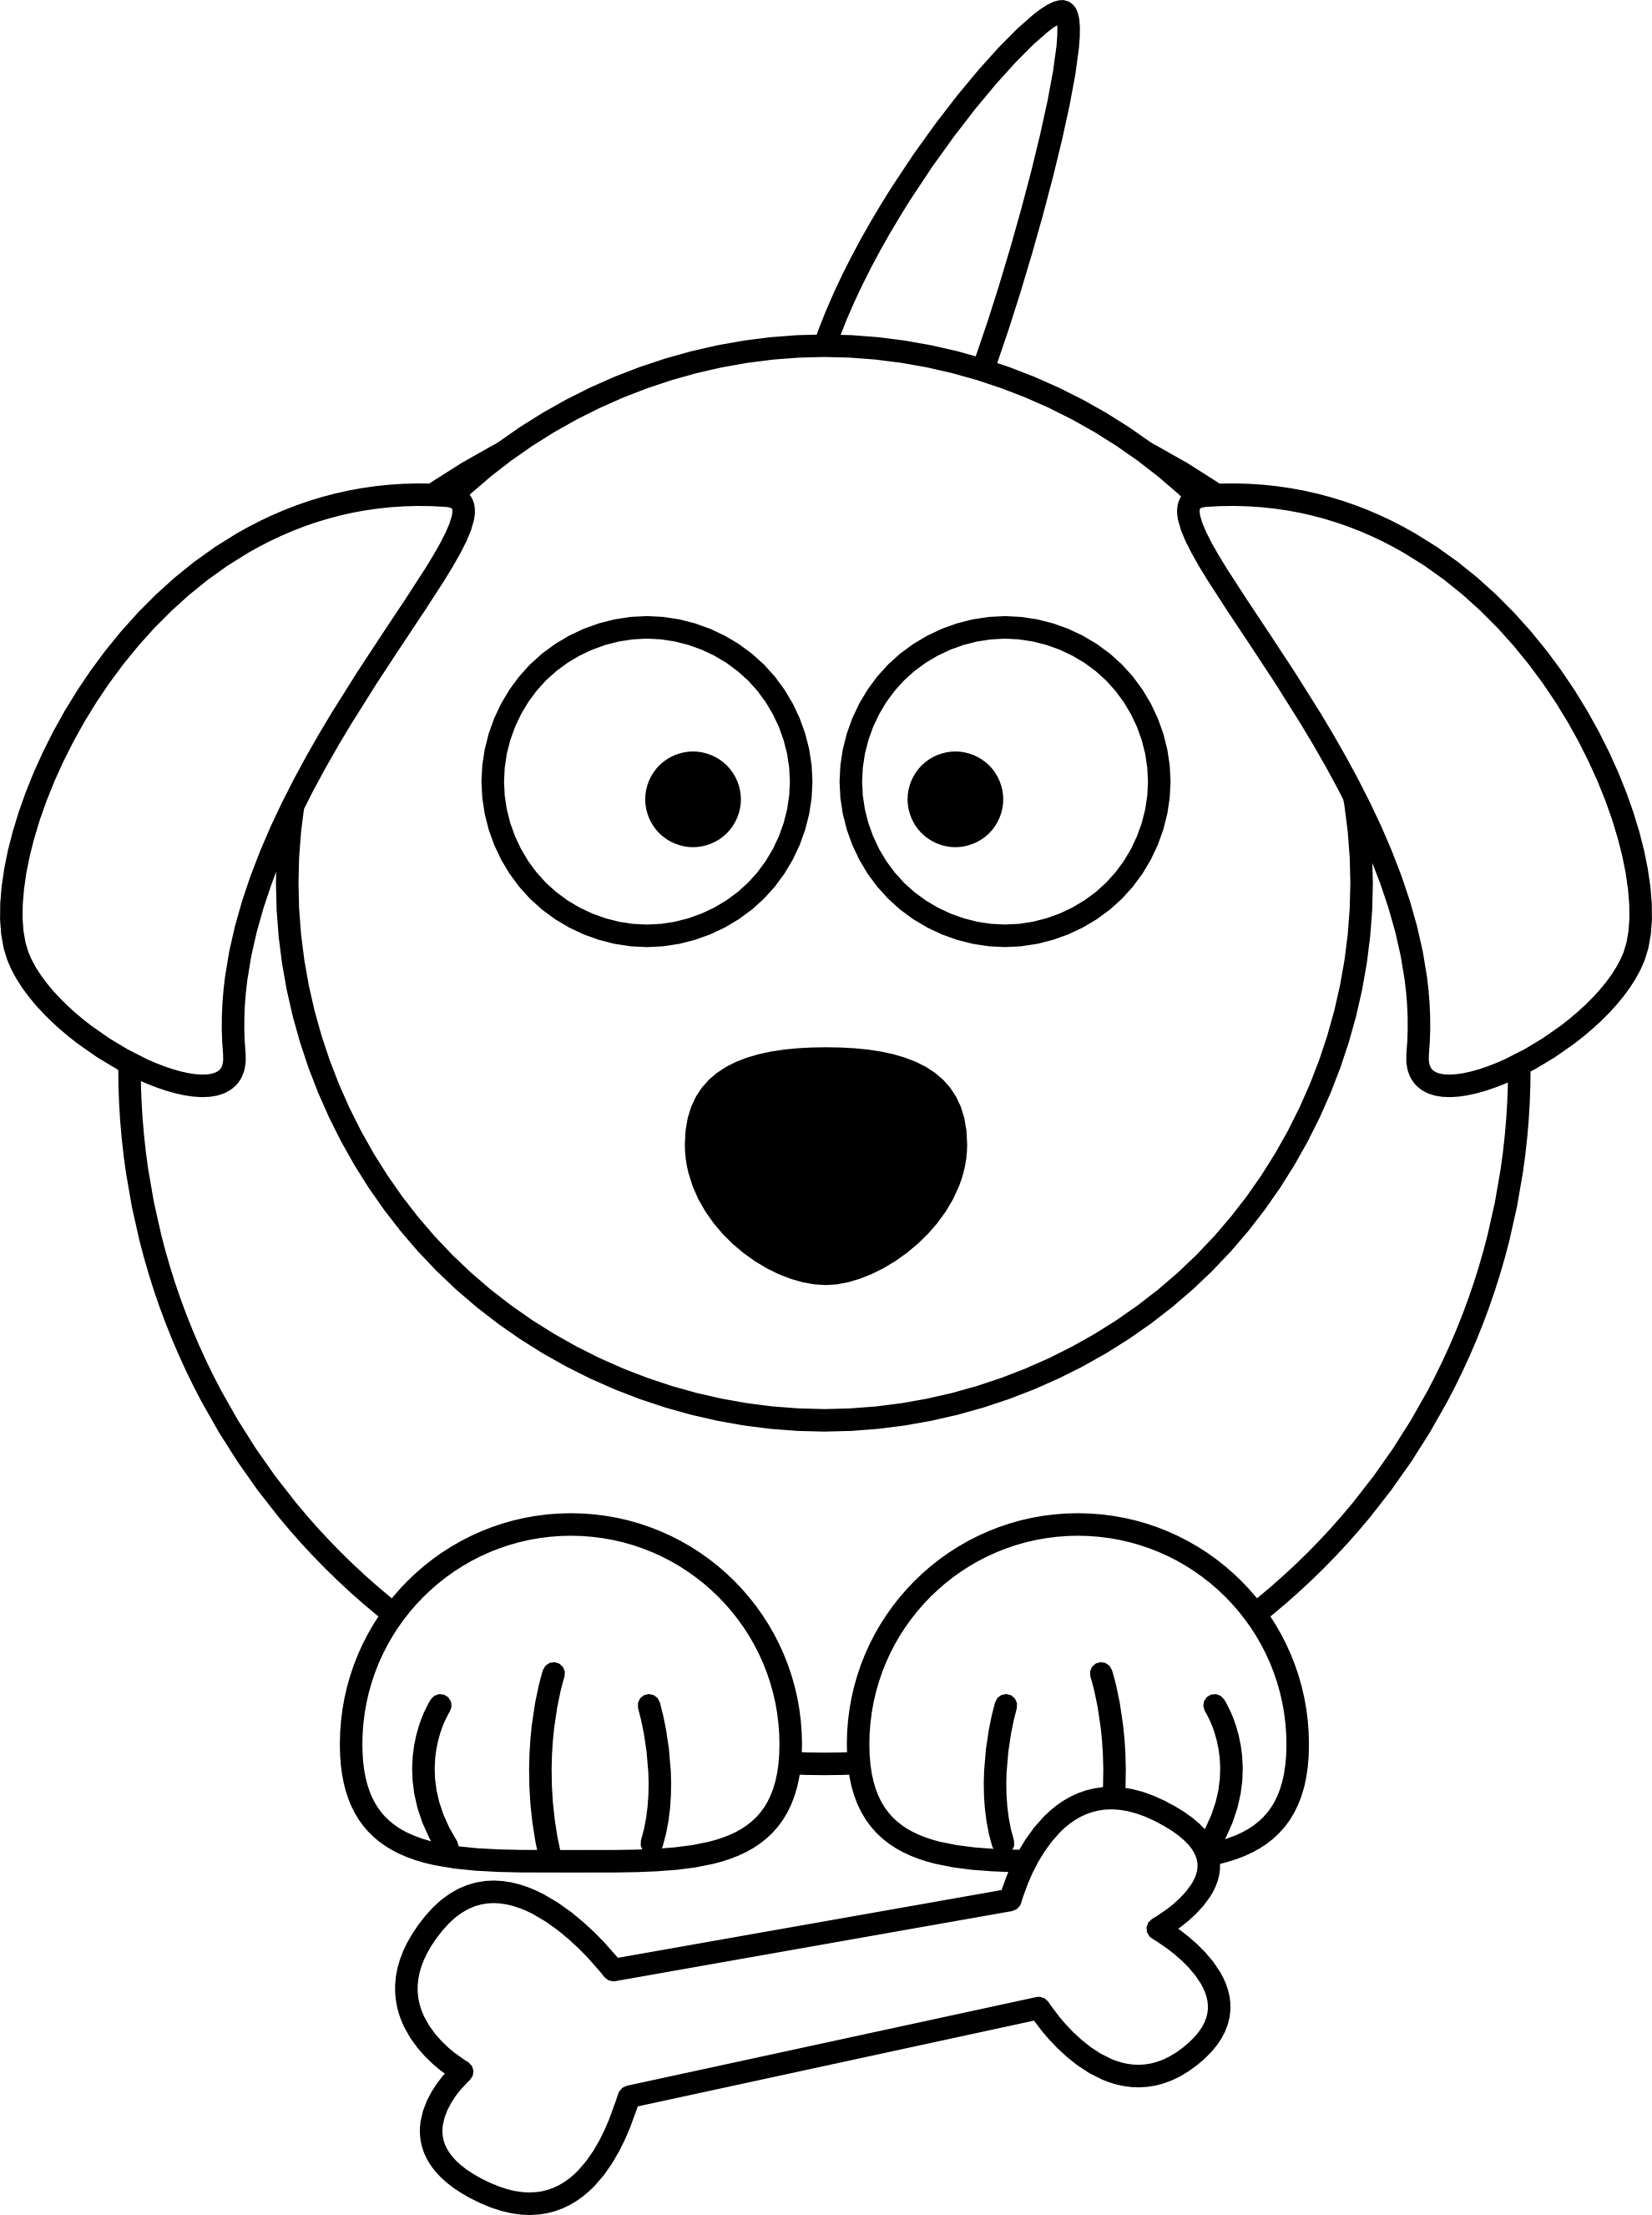 Cartoon Dog Black White Line Animal Coloring Sheet Colouring Page ...